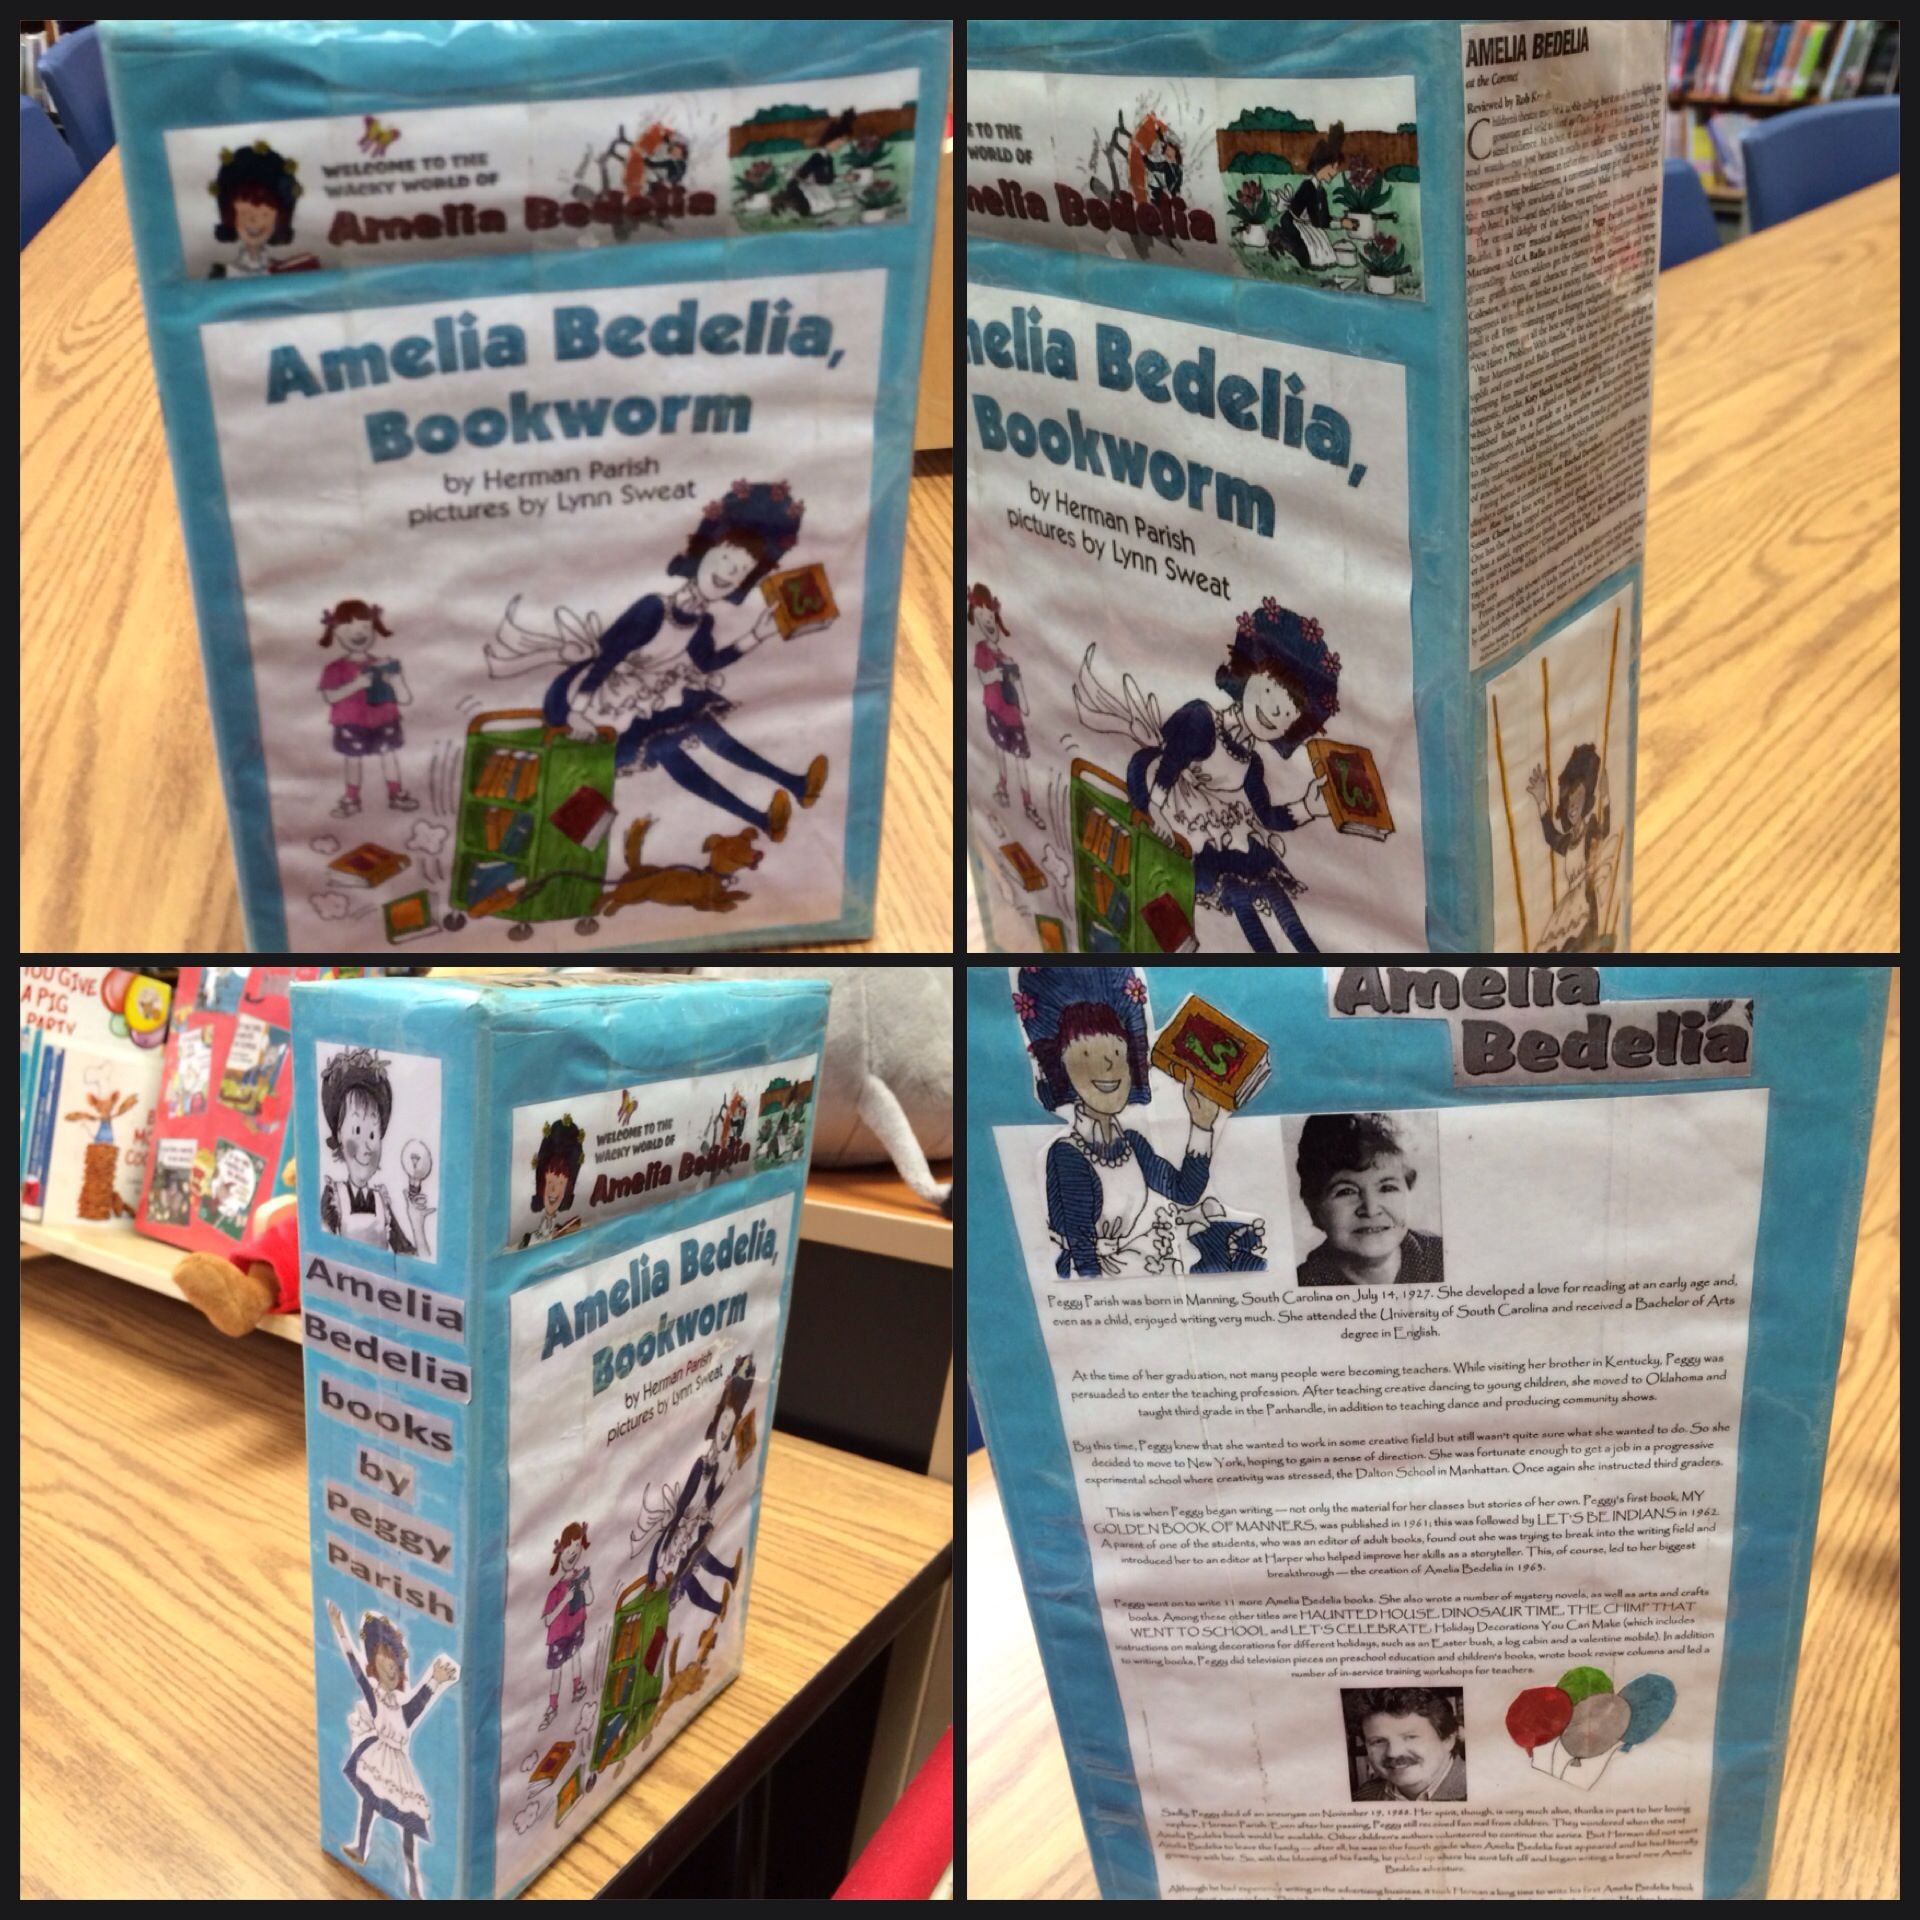 Amelia Bedelia Cereal Box With Images